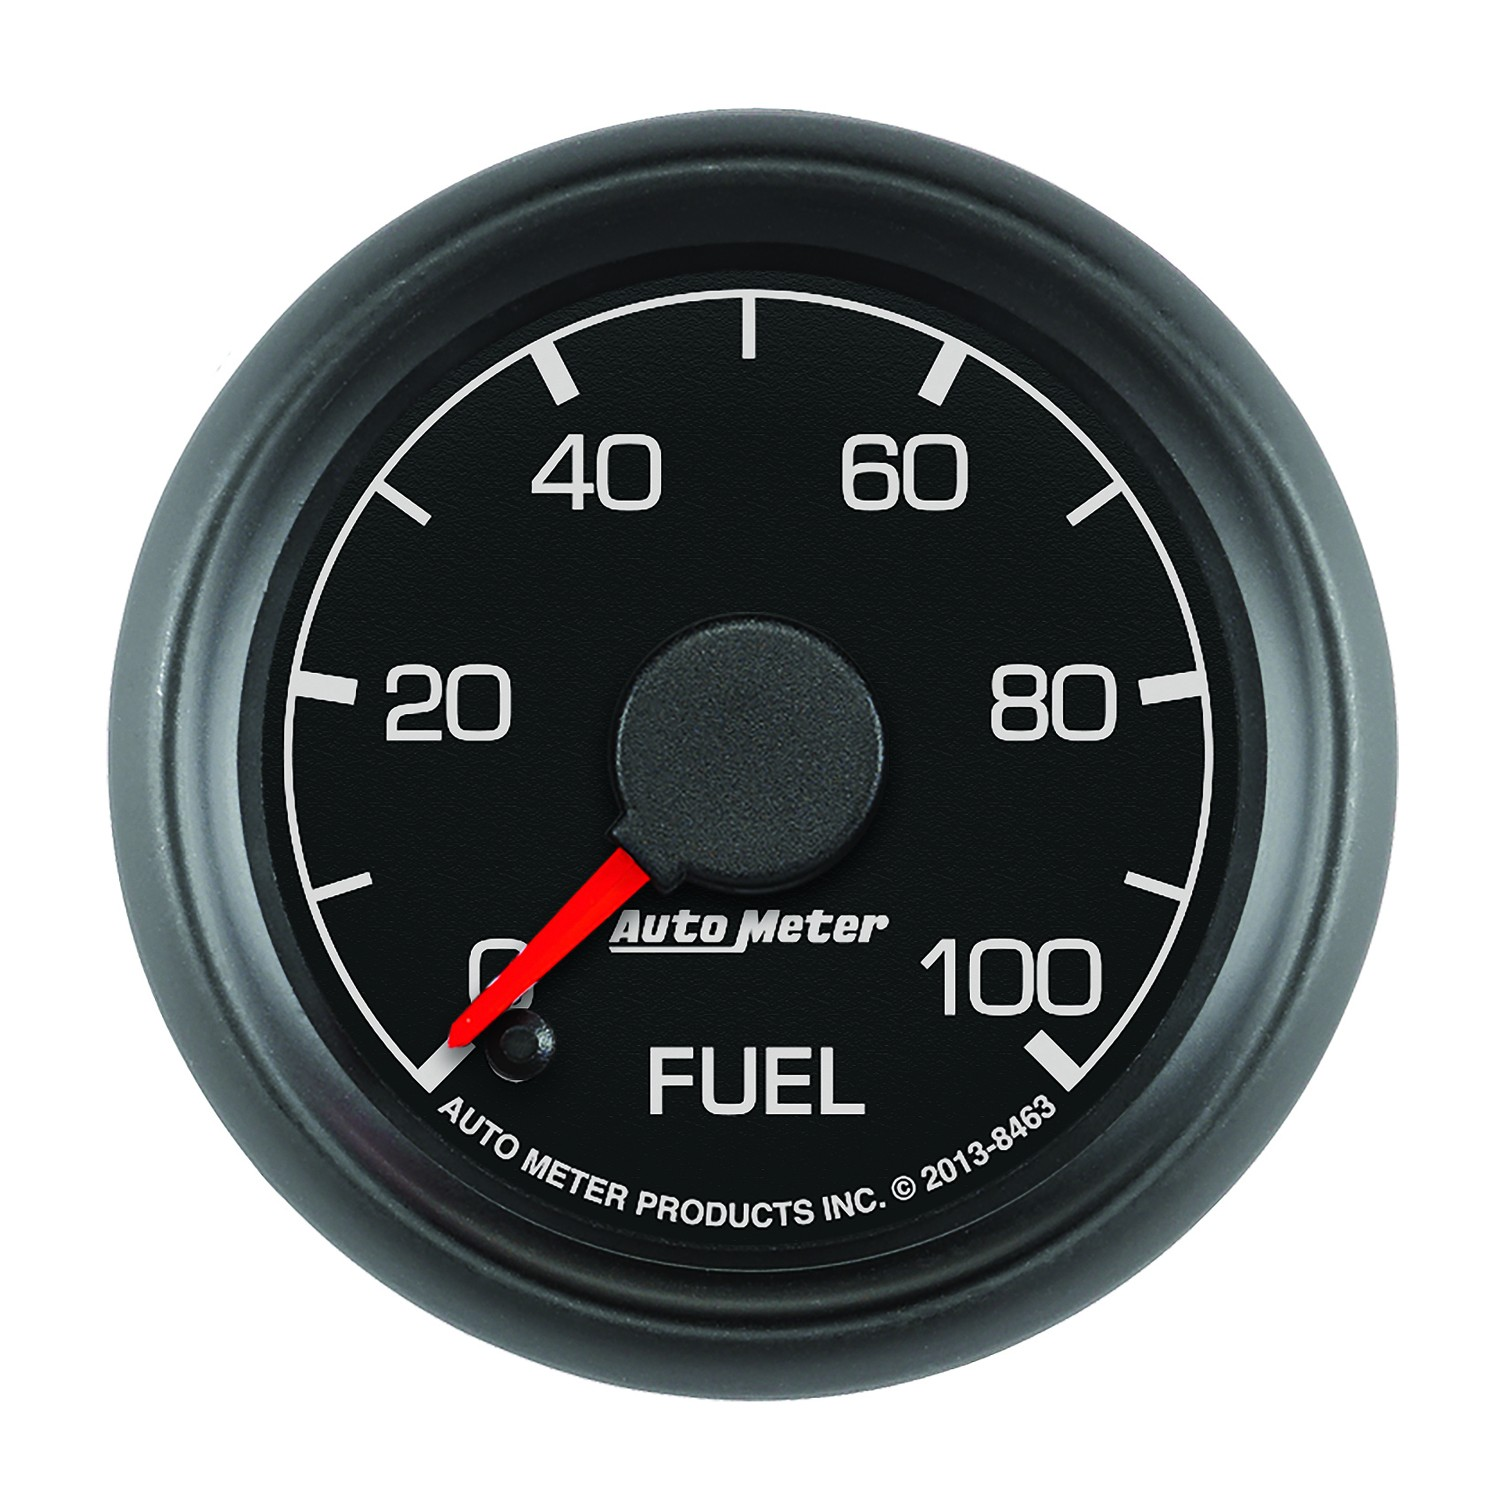 AutoMeter Ford Match Fuel Pressure 0-100 psi #8463